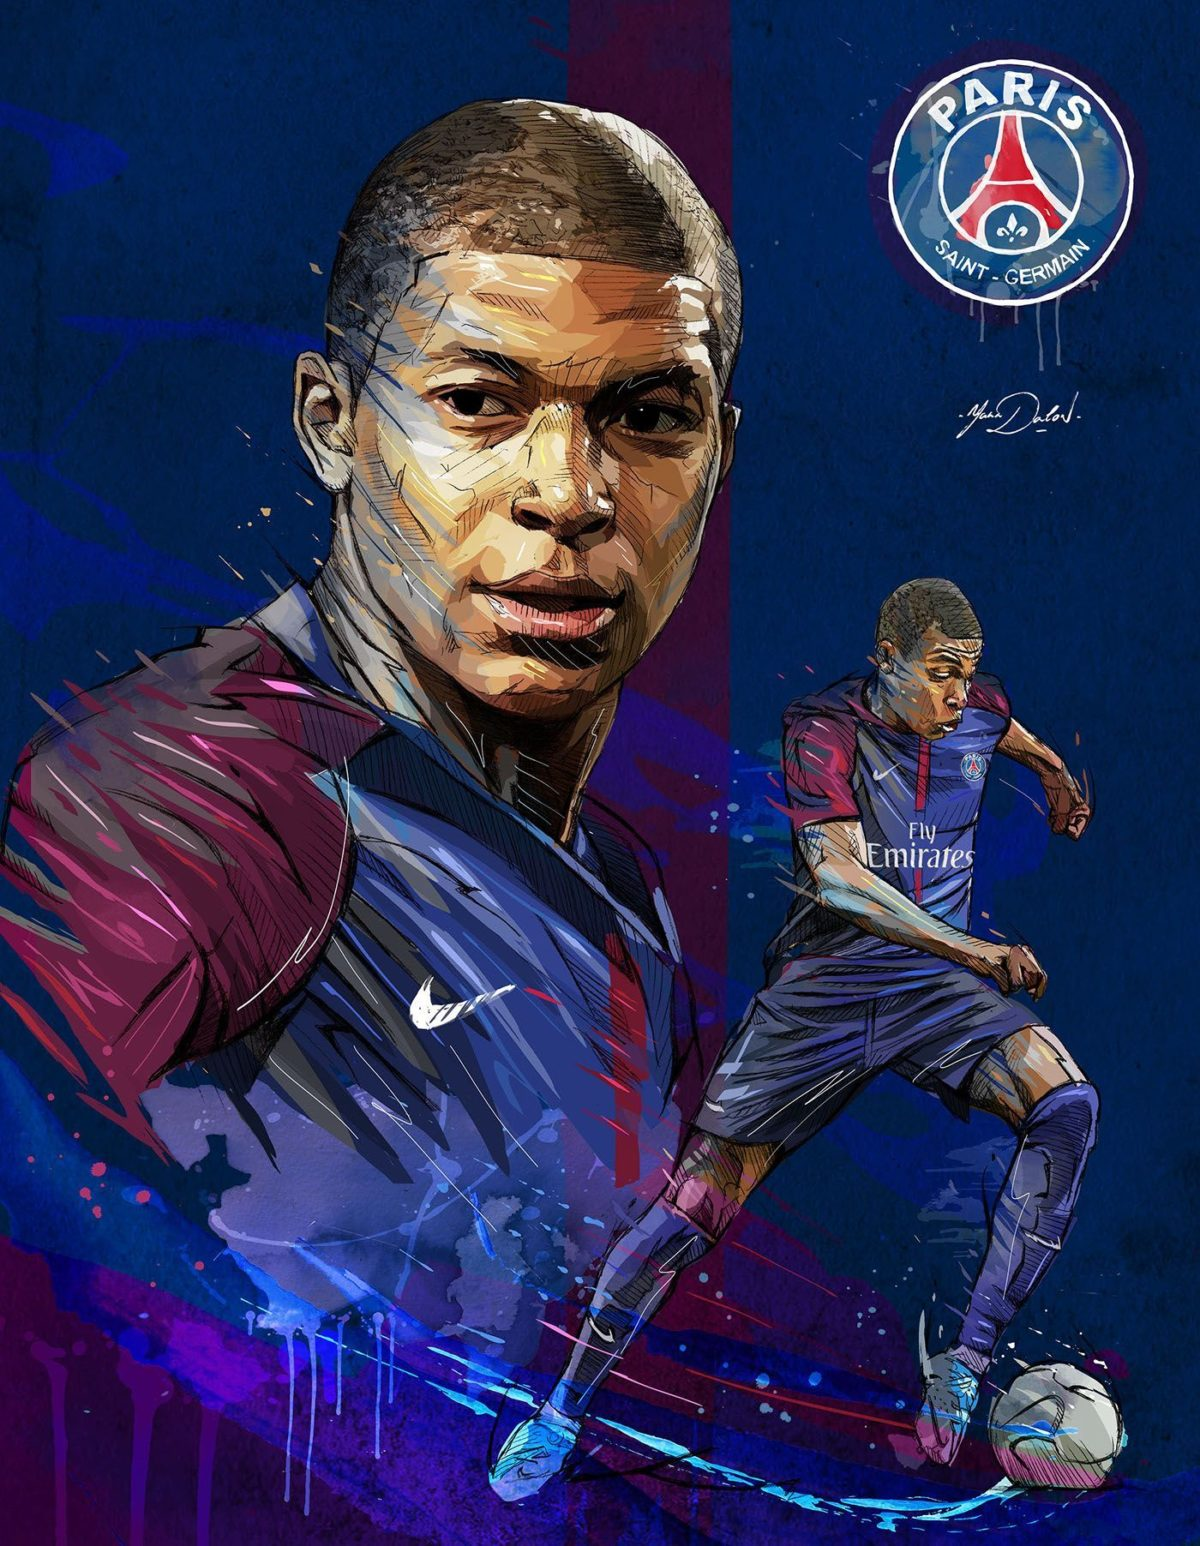 My painting of Kylian Mbappé, young soccer player of the PSG …